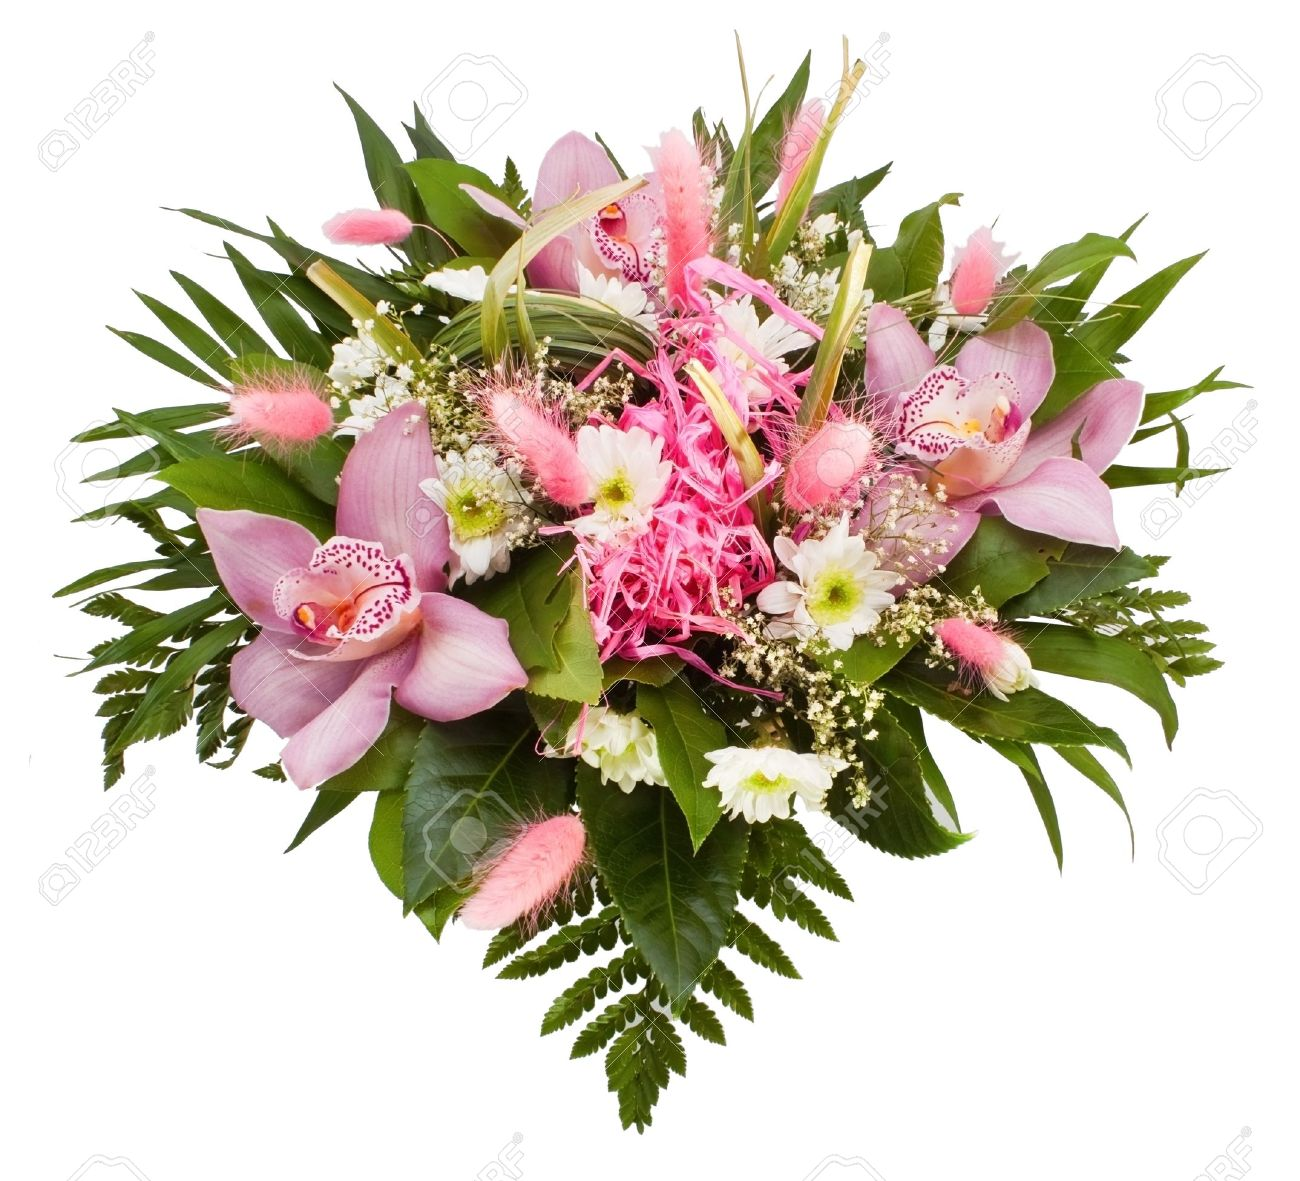 Flower Bouquet On The White Background Stock Photo, Picture And ...